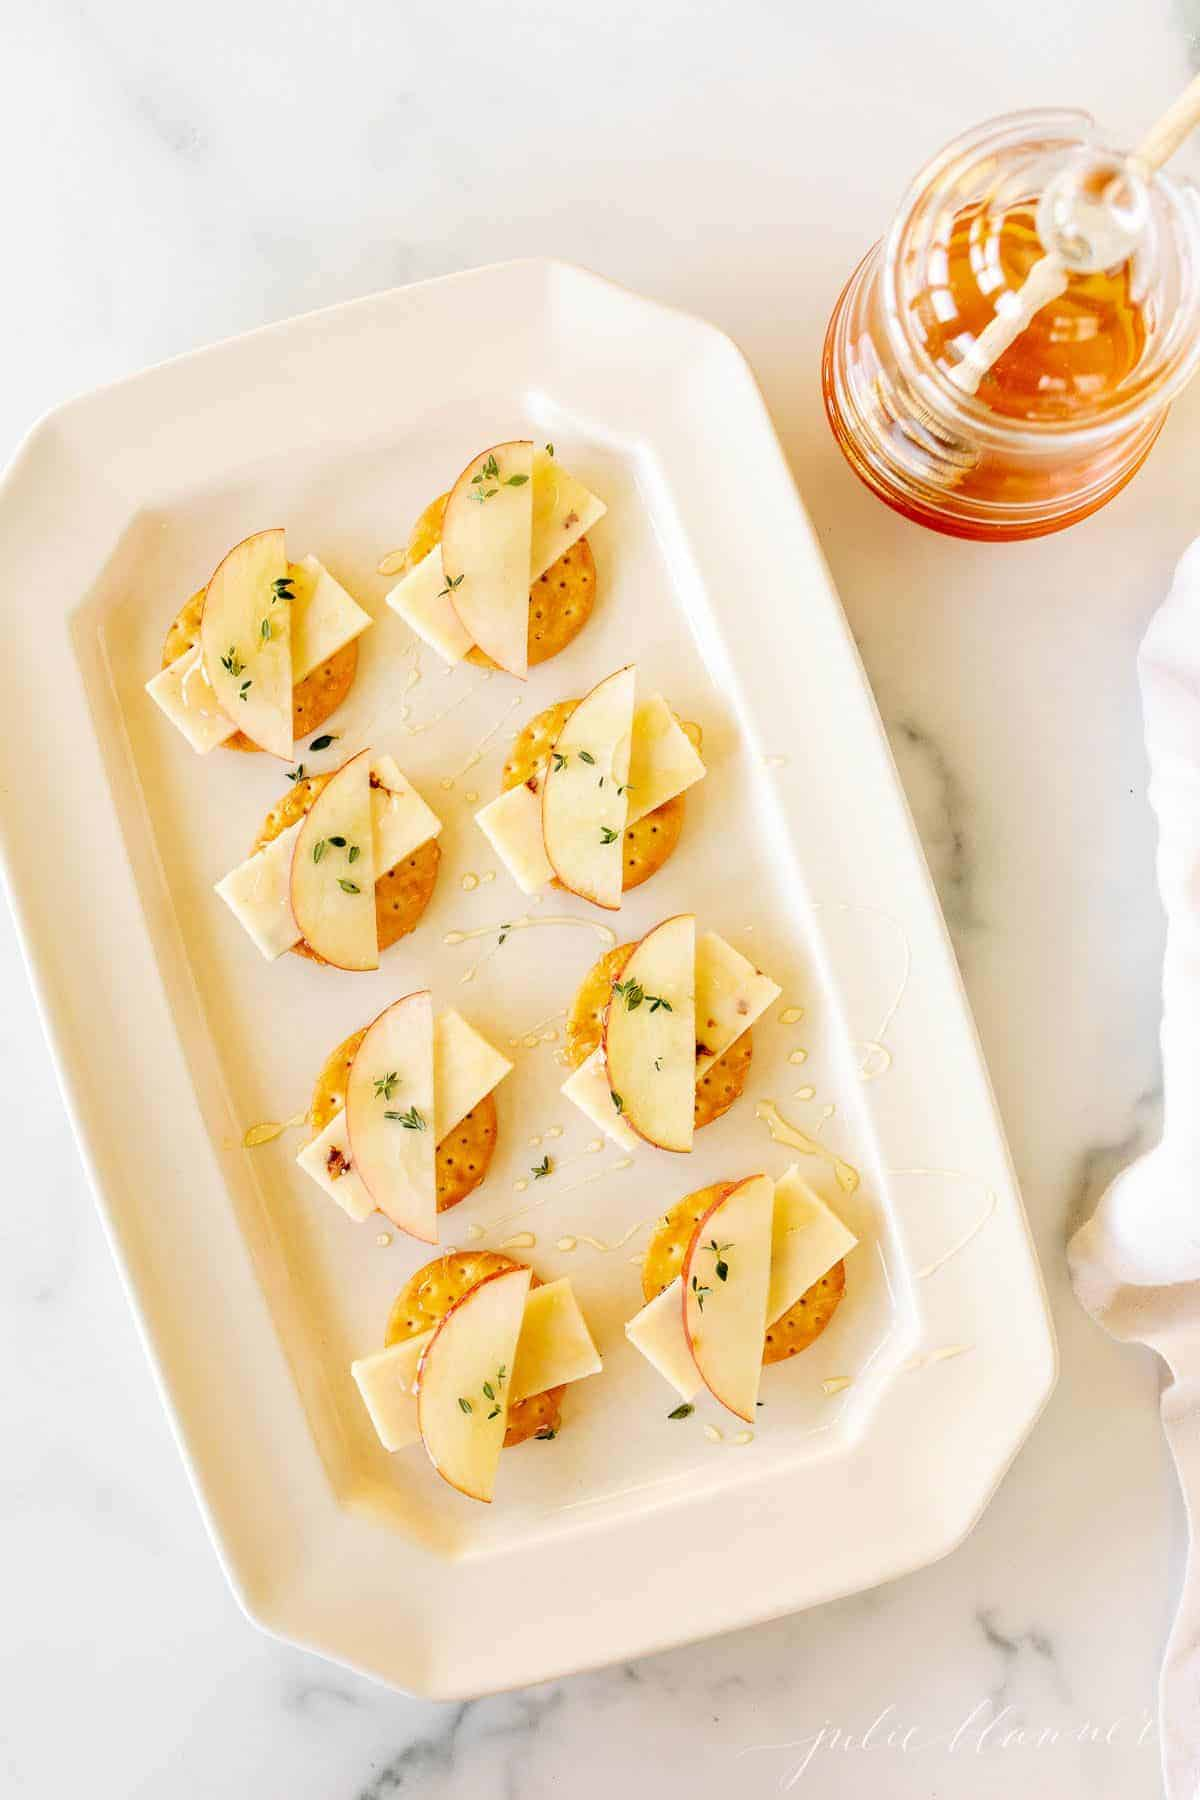 A rectangular white platter featuring a display of cheese and crackers.